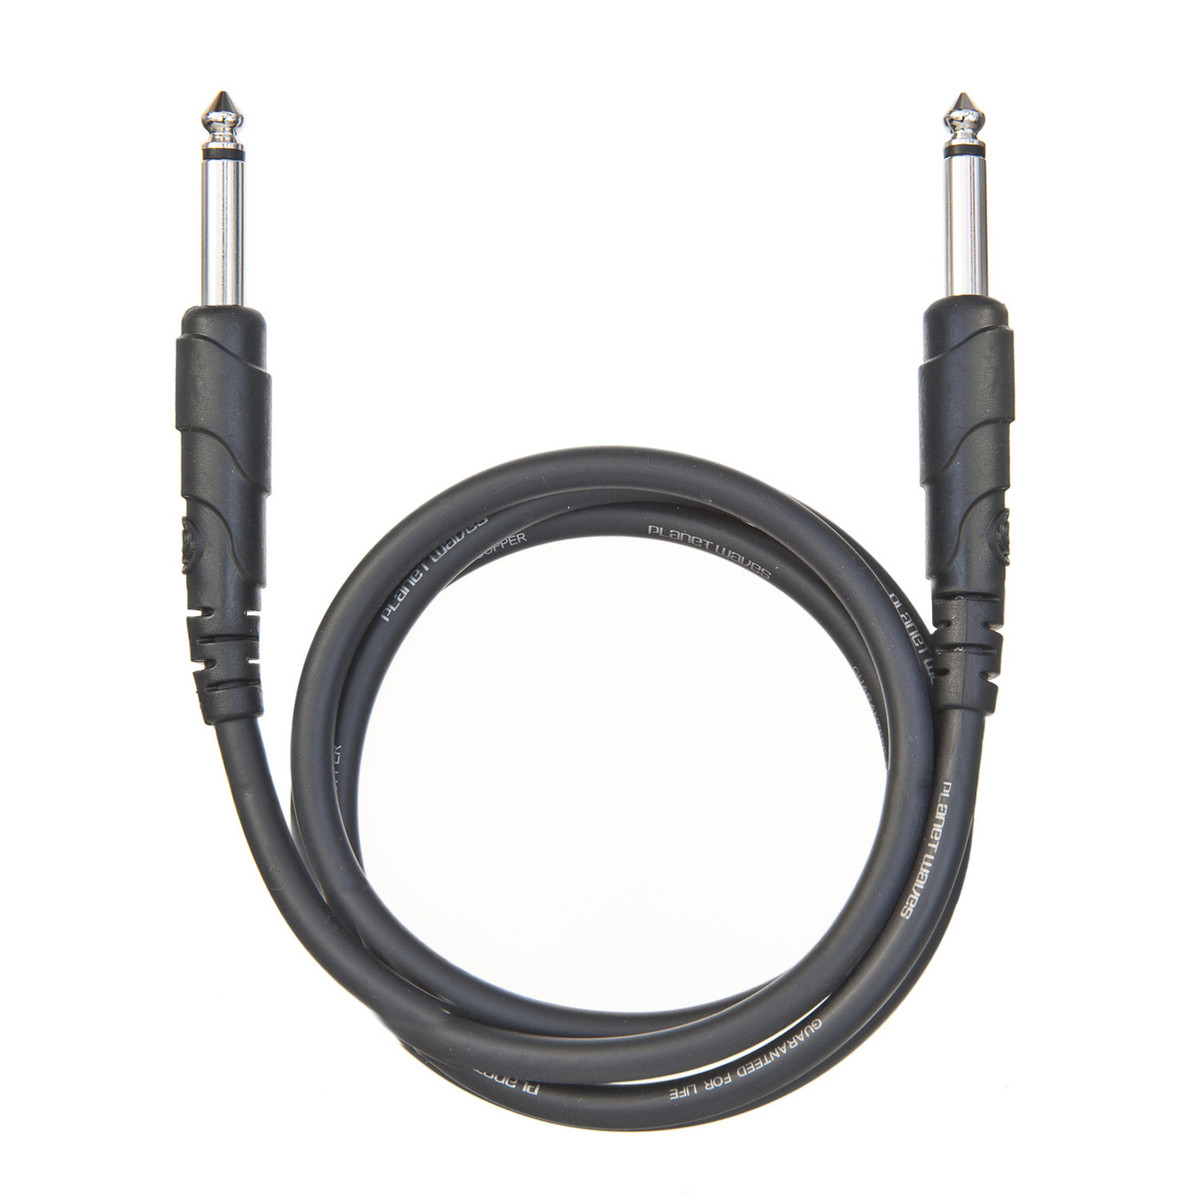 Planet Waves Patch Cables : planet waves classic patch cable 1ft at ~ Hamham.info Haus und Dekorationen